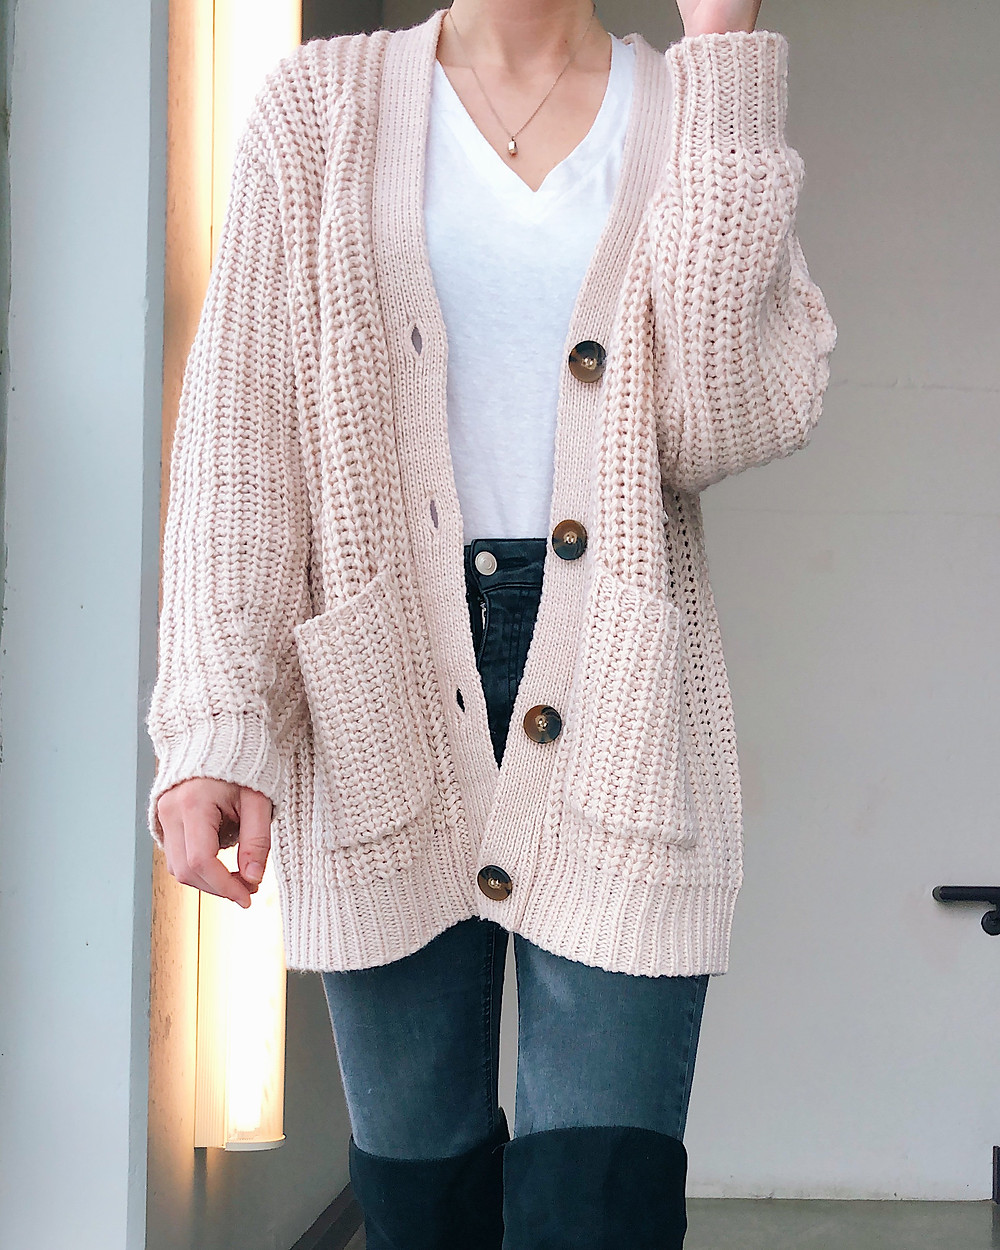 Abby Graf, the Bleached Curl, chunky knit cardigan, outfit inspiration, winter outfit